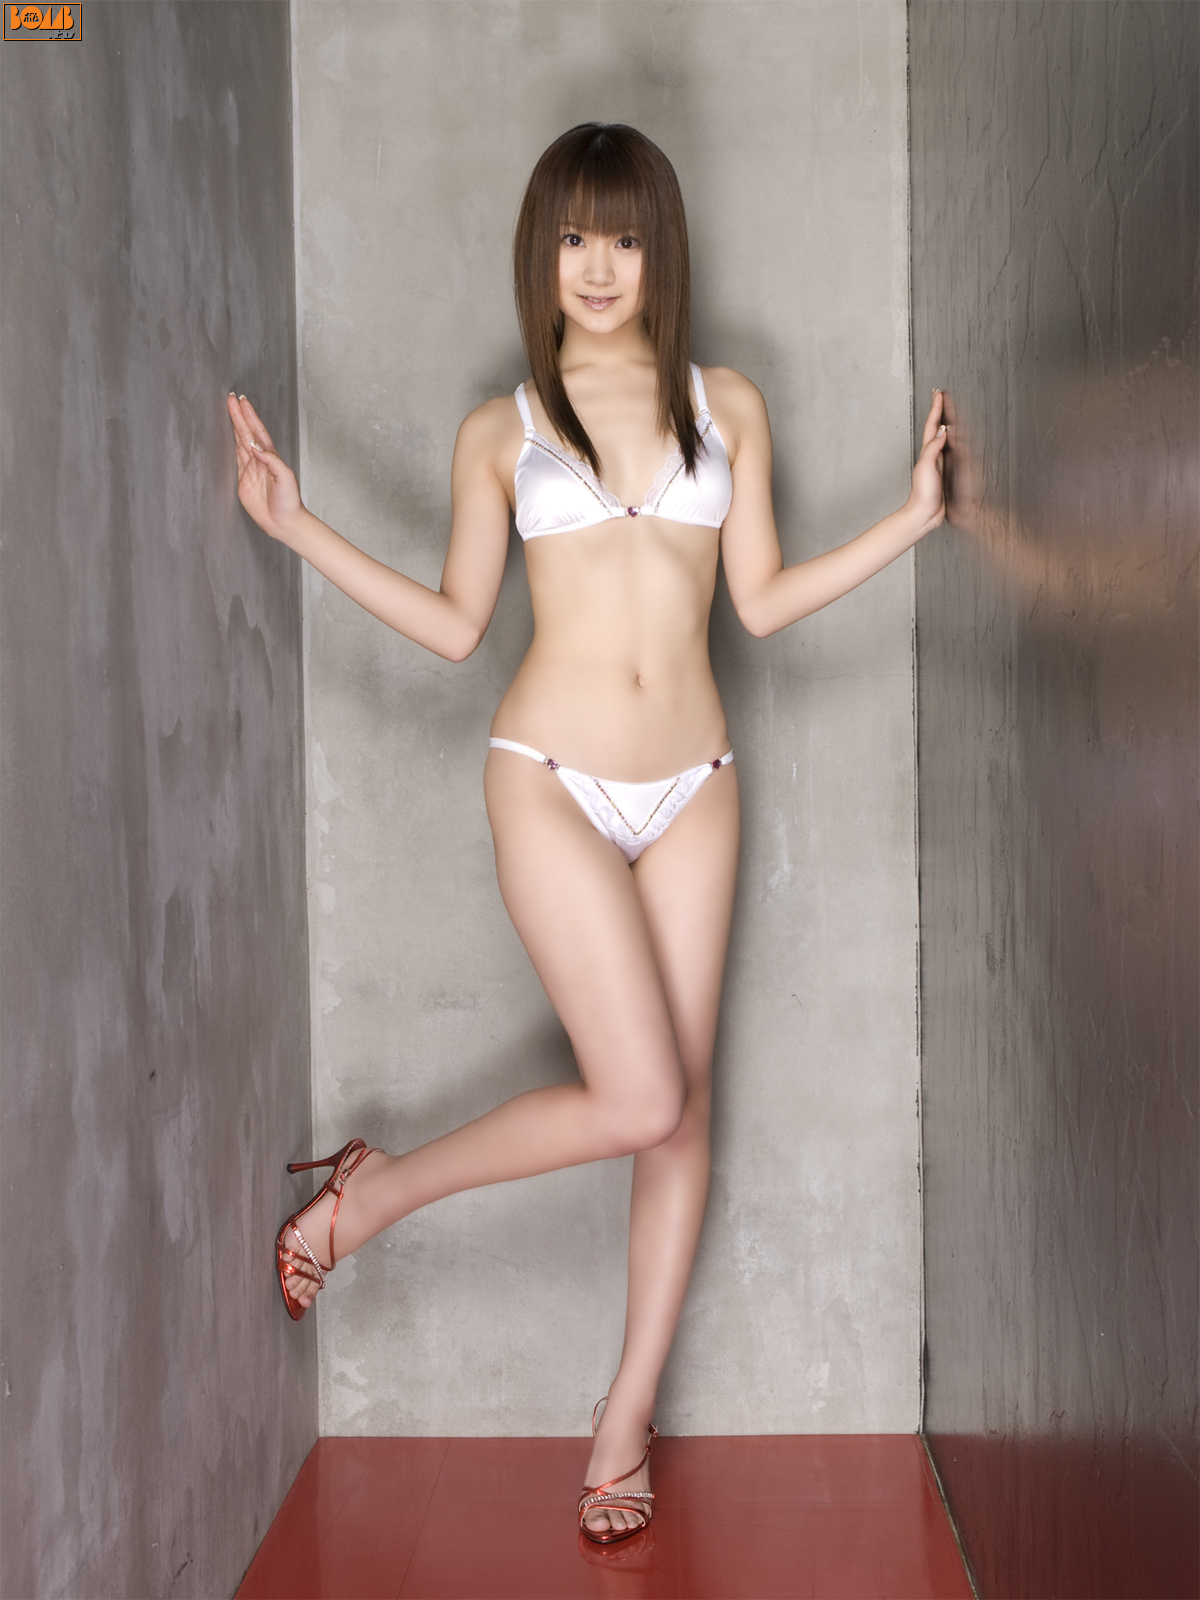 shoko hamada bomb tv 2009 09 facebook twitter images of